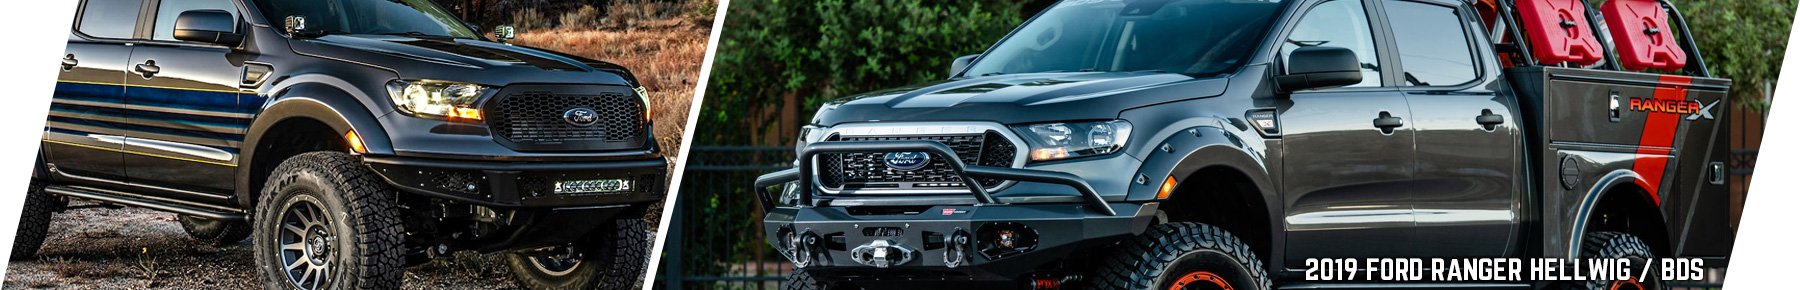 2019-Ford-Ranger-Hellwig-BDS-front-bumpers